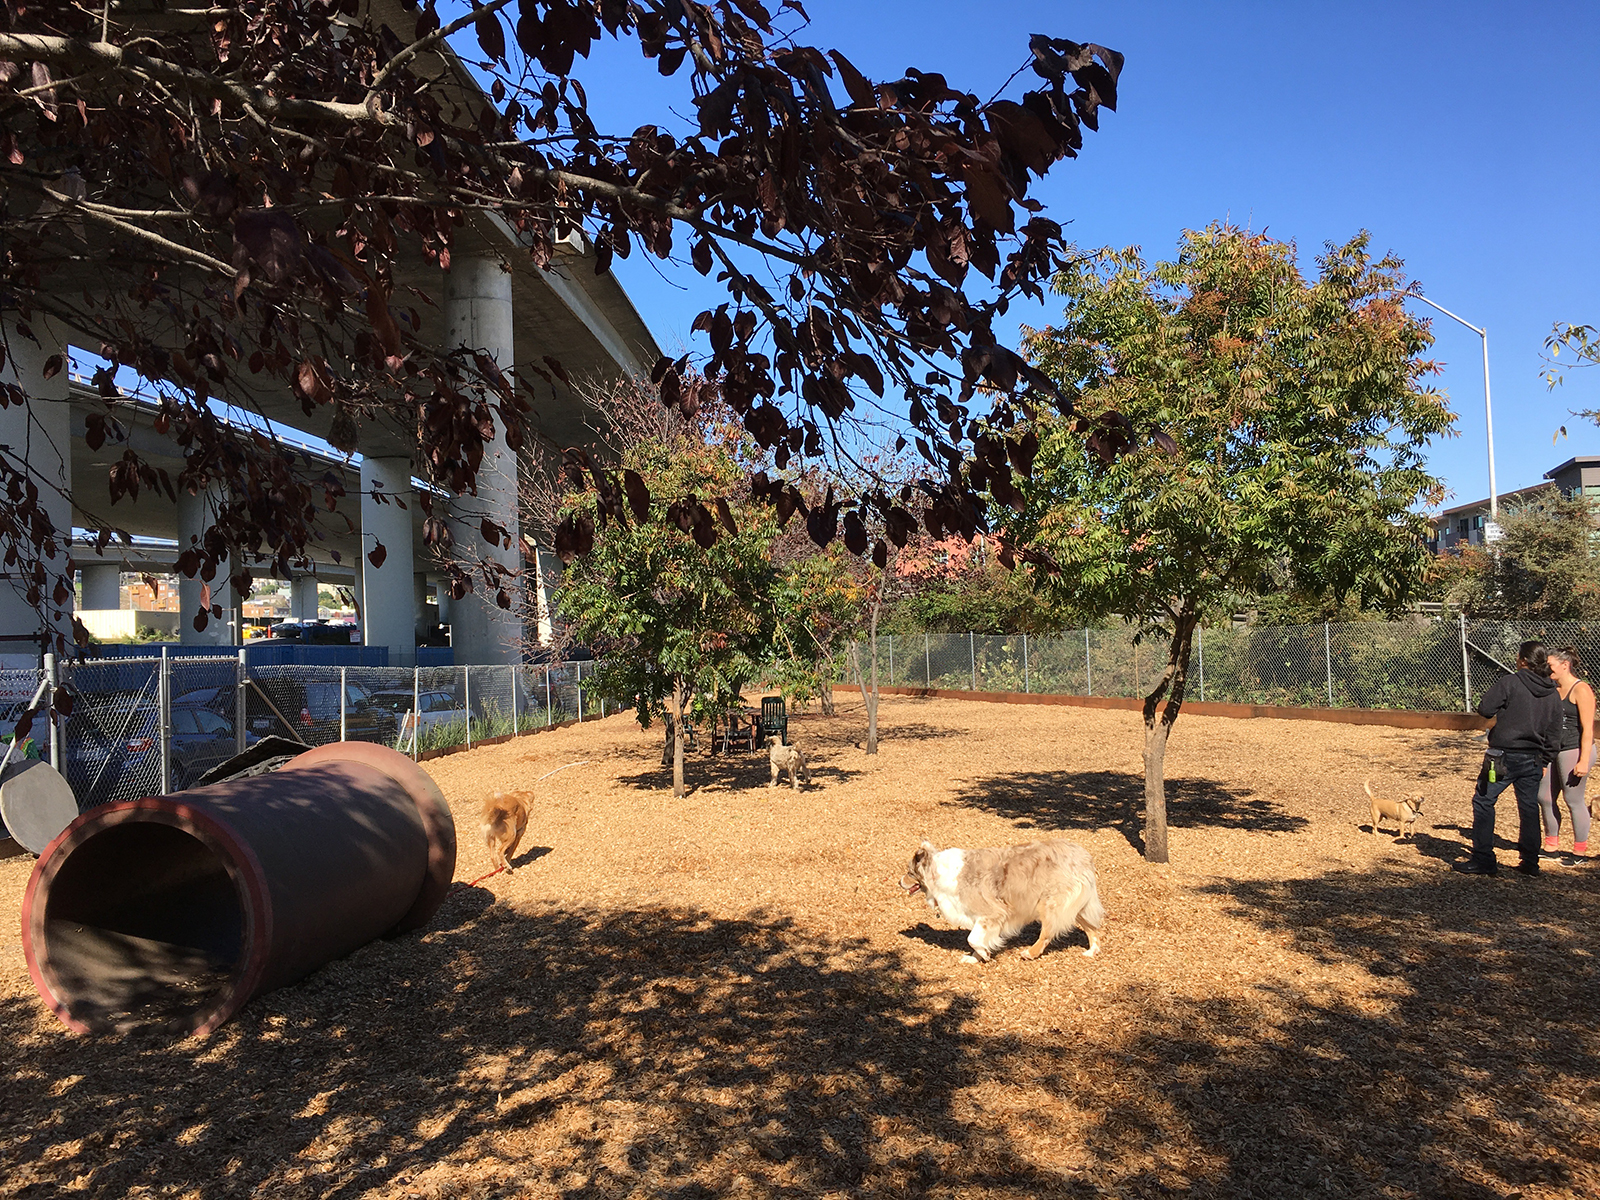 Progress-Park-Dog-Run-Nov-2016w.jpg